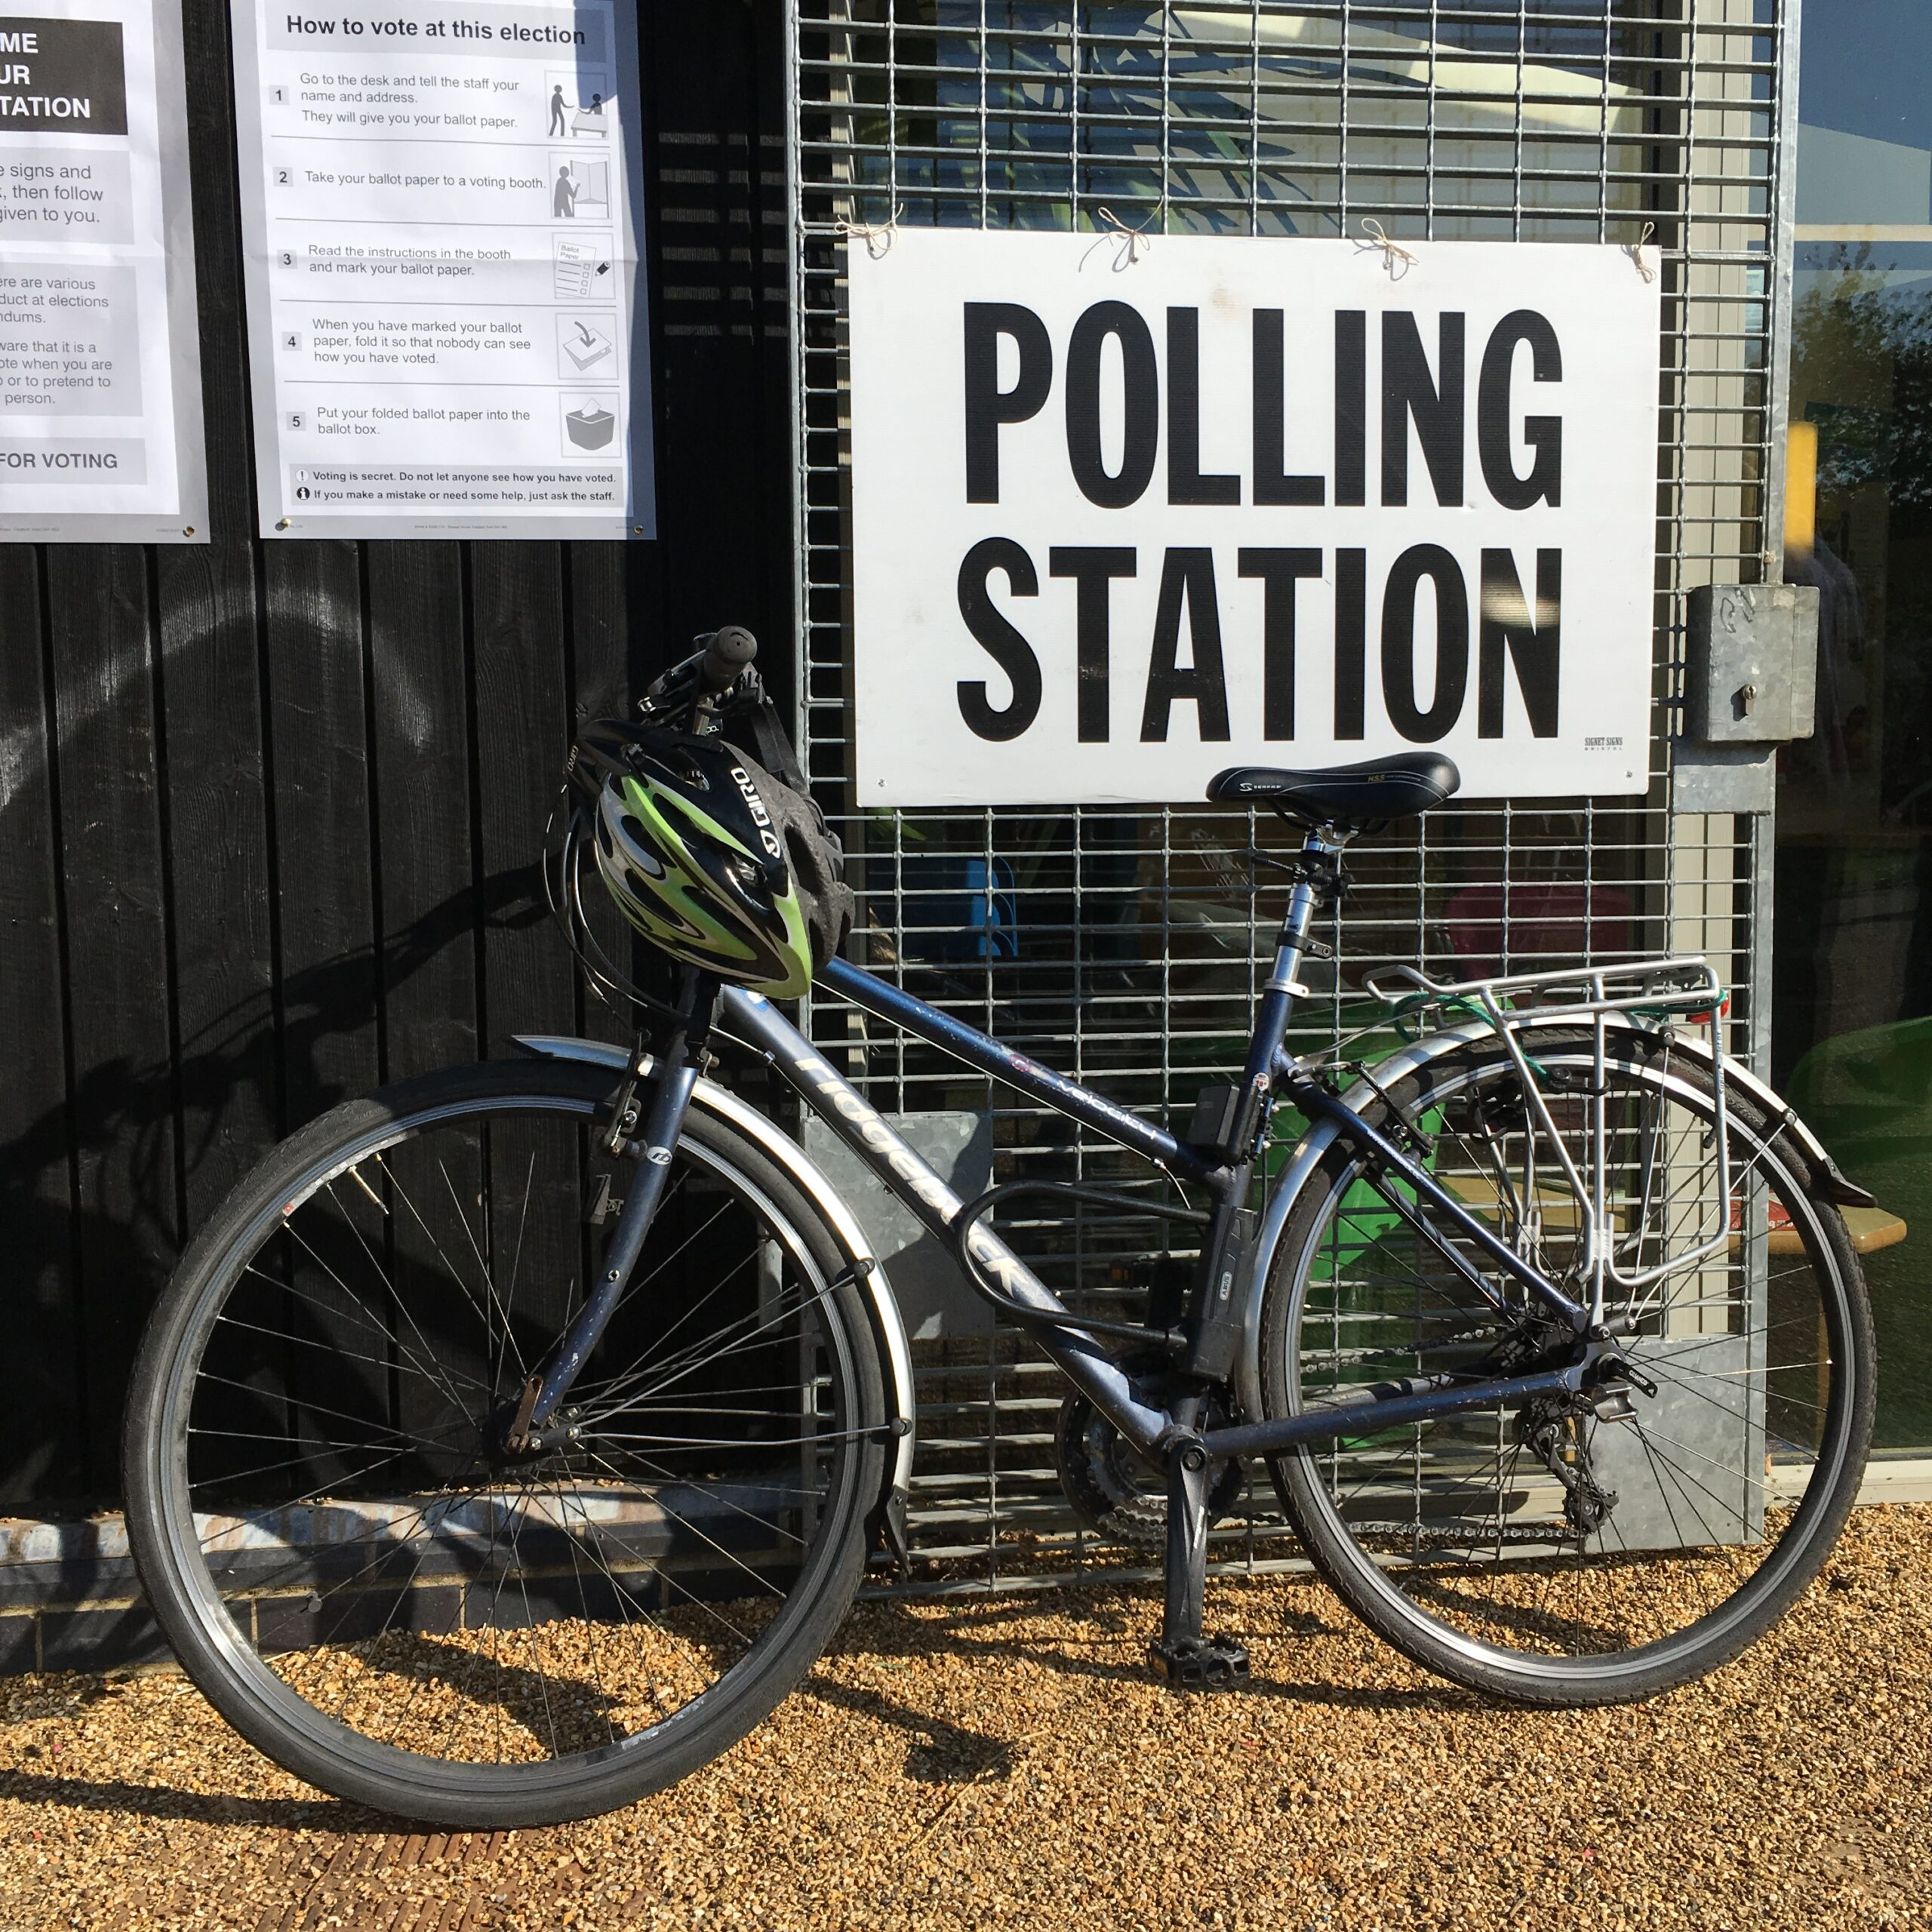 Bike at a polling station